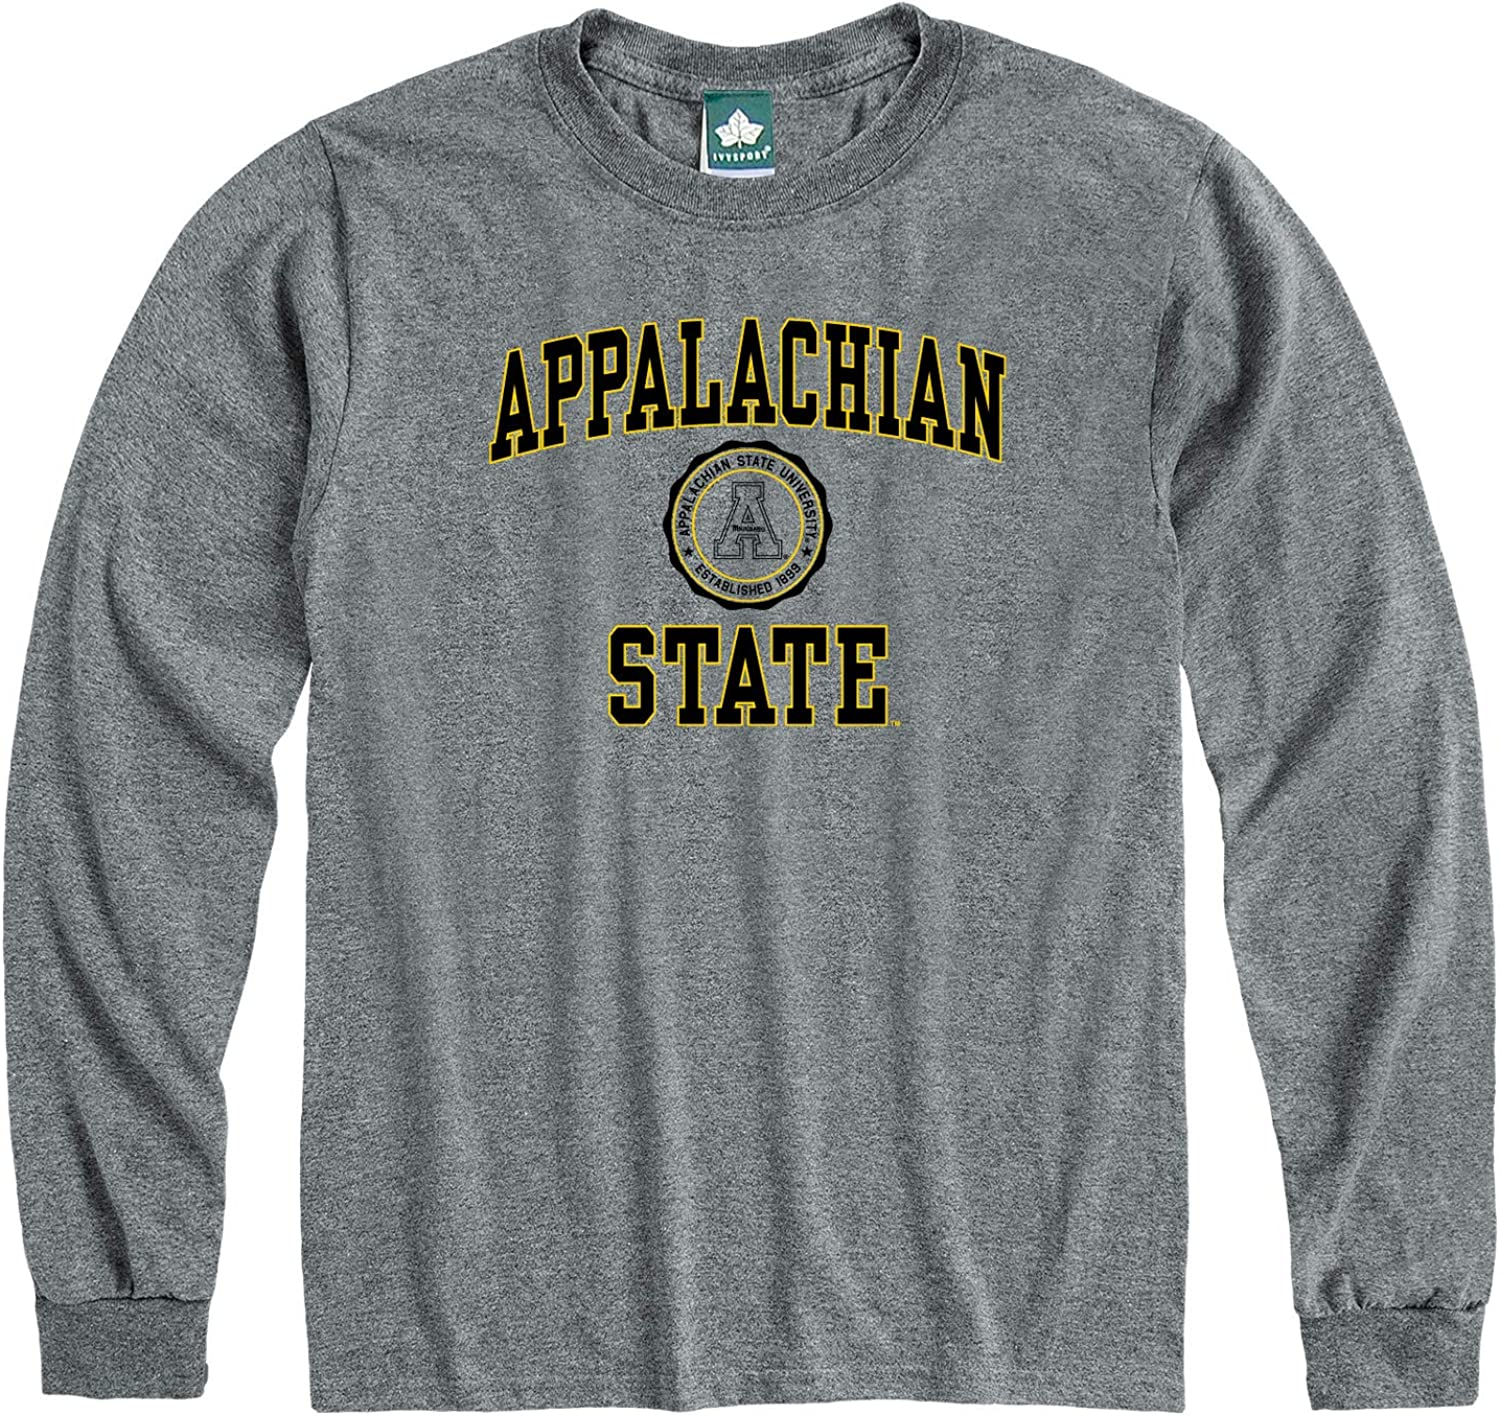 Grey NCAA Colleges and Universities Heritage Logo Ivysport Long Sleeve Cotton Adult T-Shirt